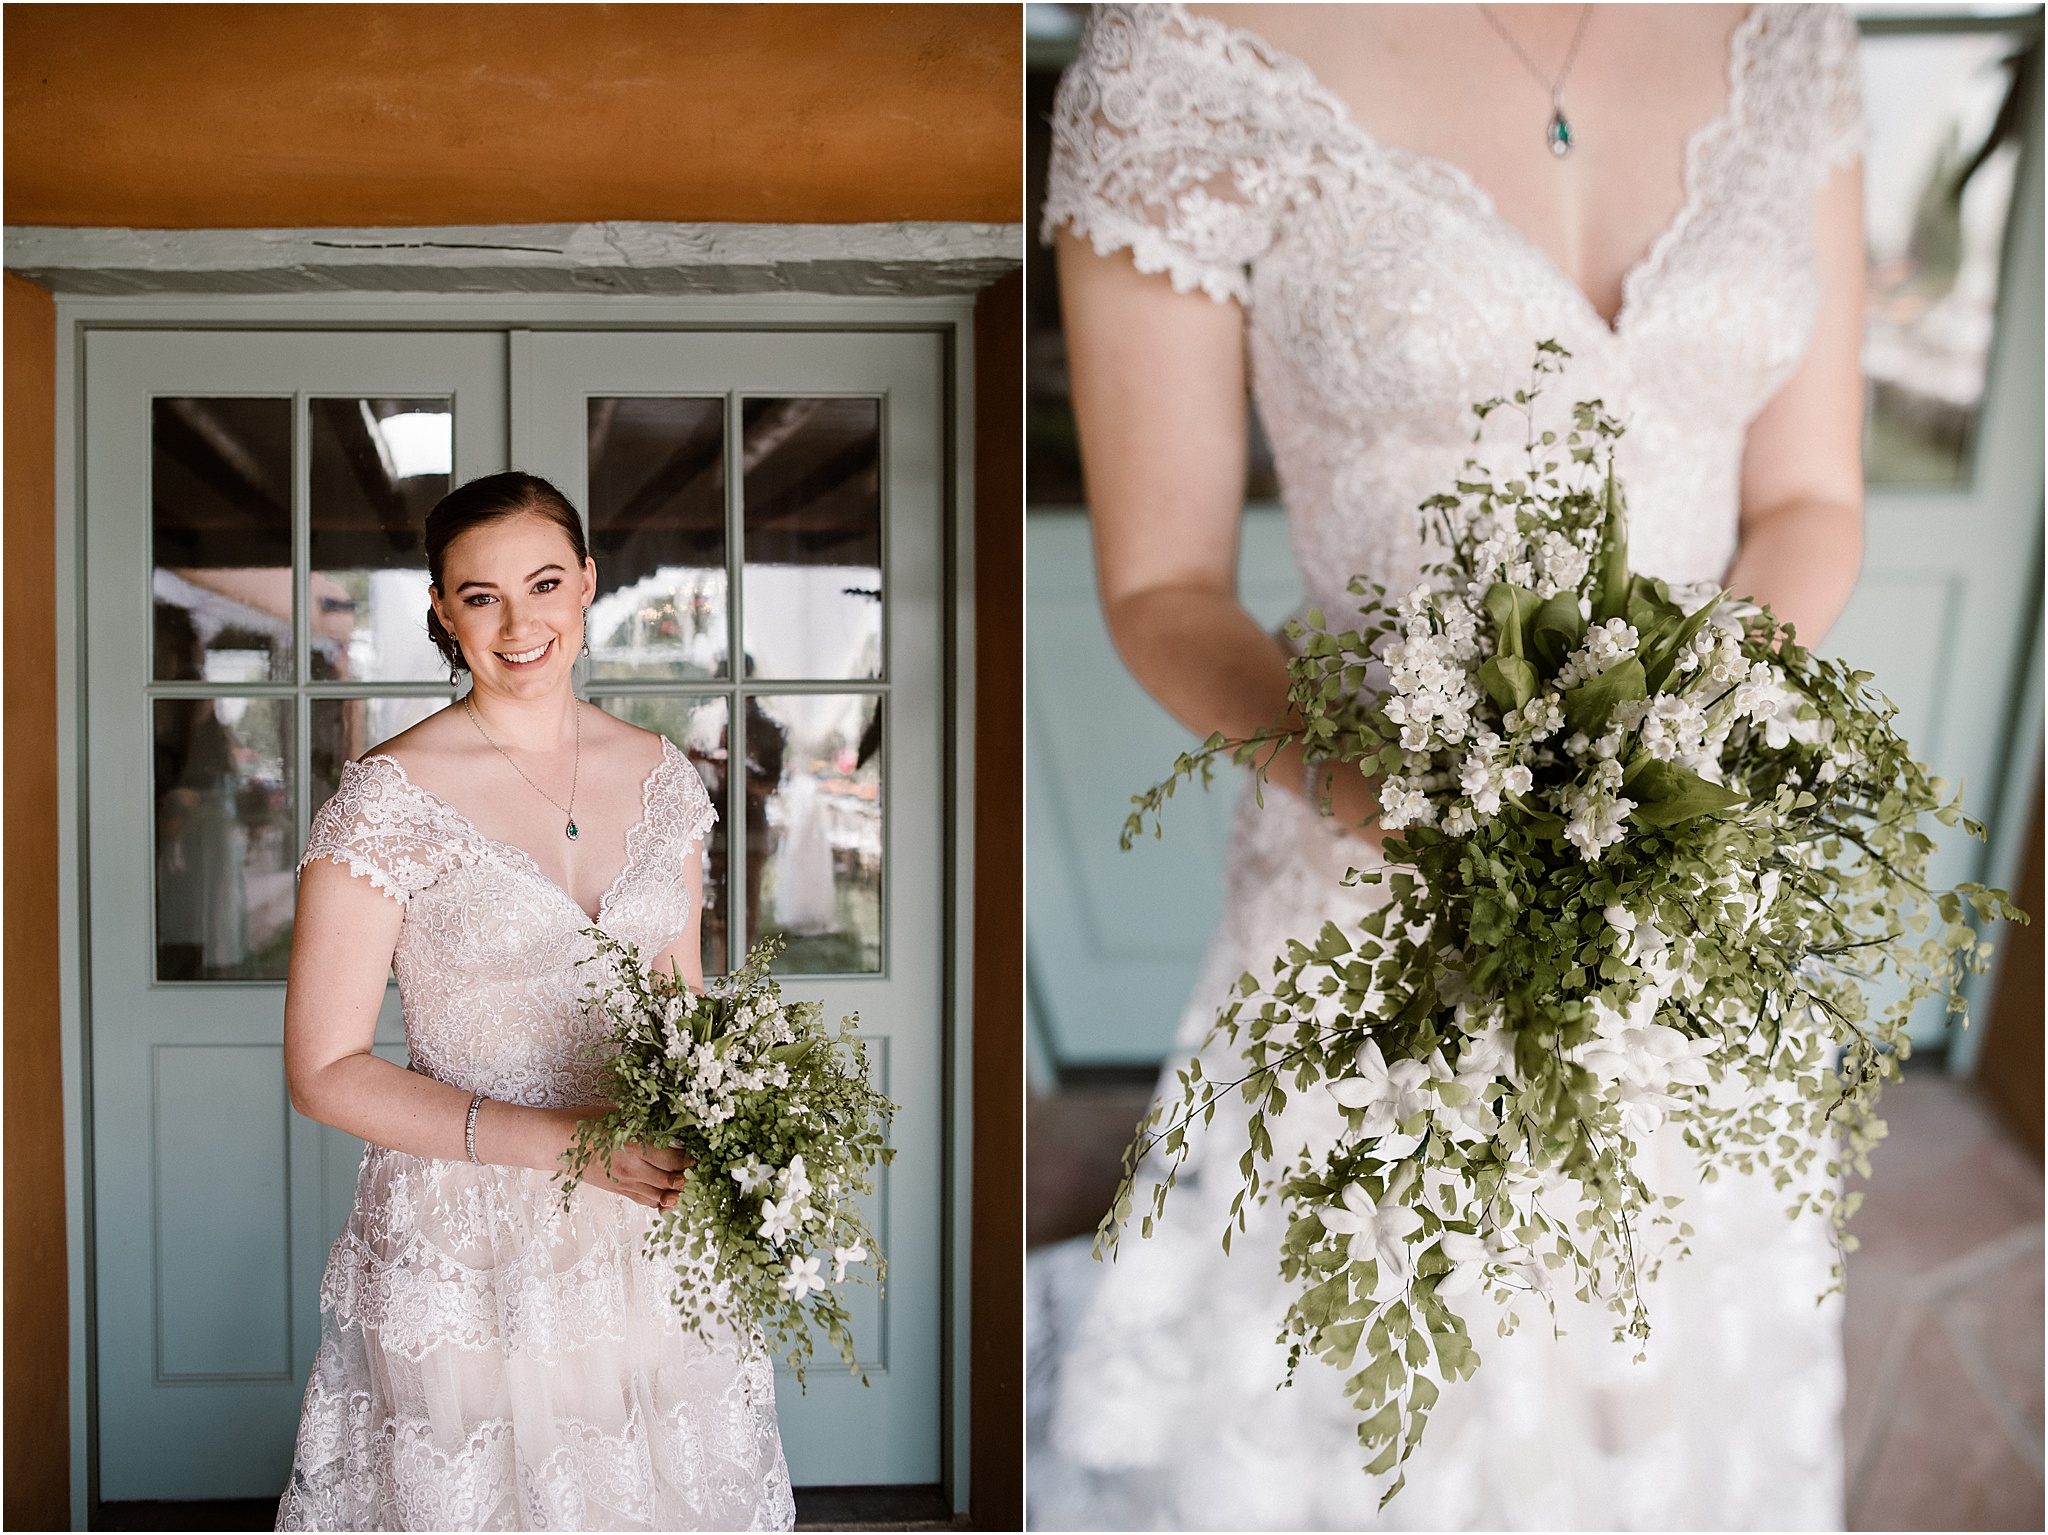 AMELIA_JASON_SANTA FE_ WEDDING_BLUE ROSE PHOTOGRAPHY47